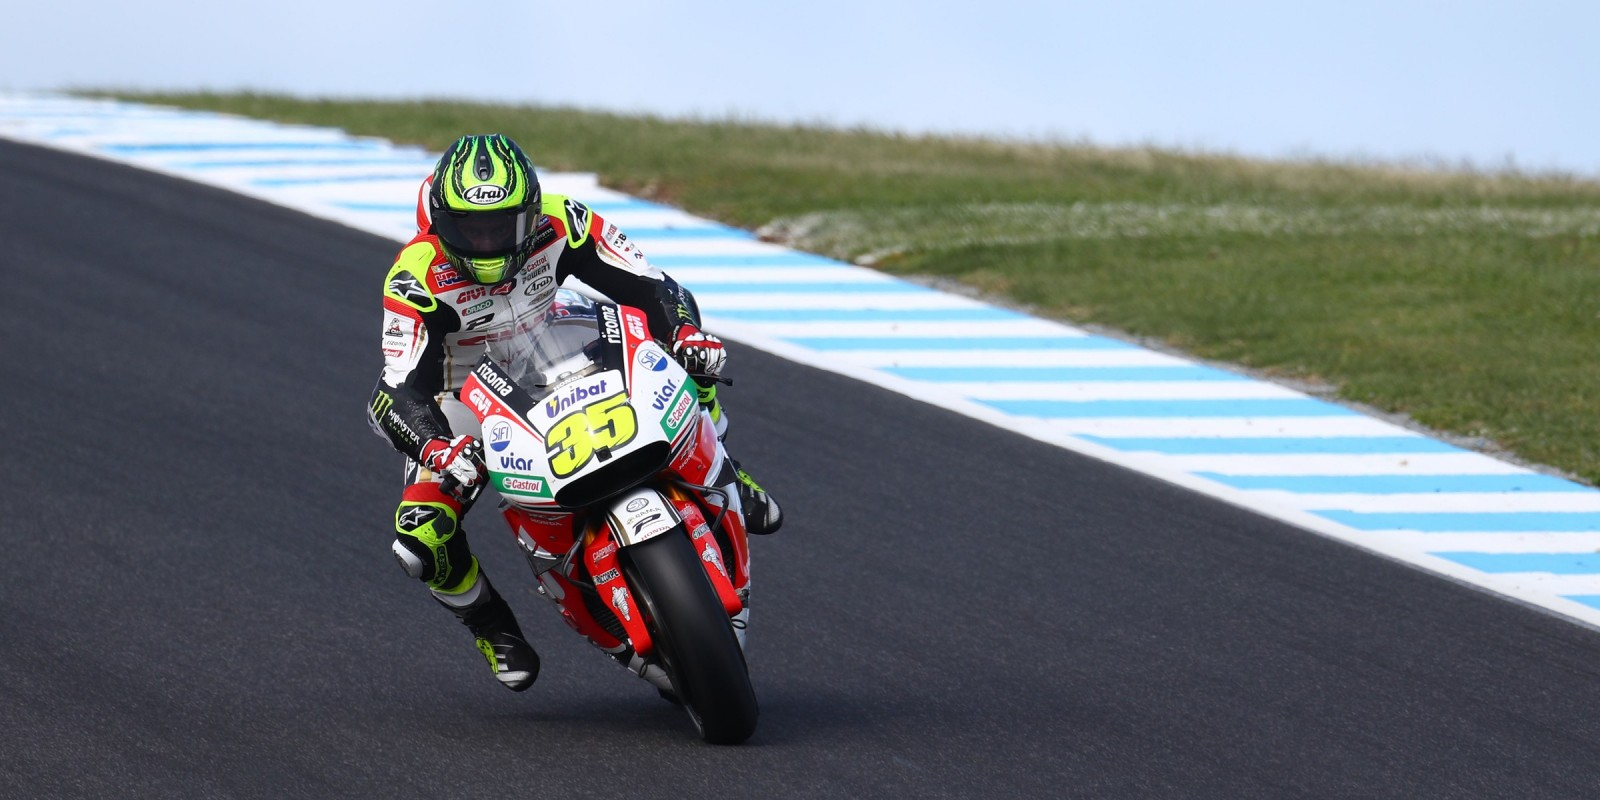 Sunday race day action images of MotoGP Phillip Island, Australia